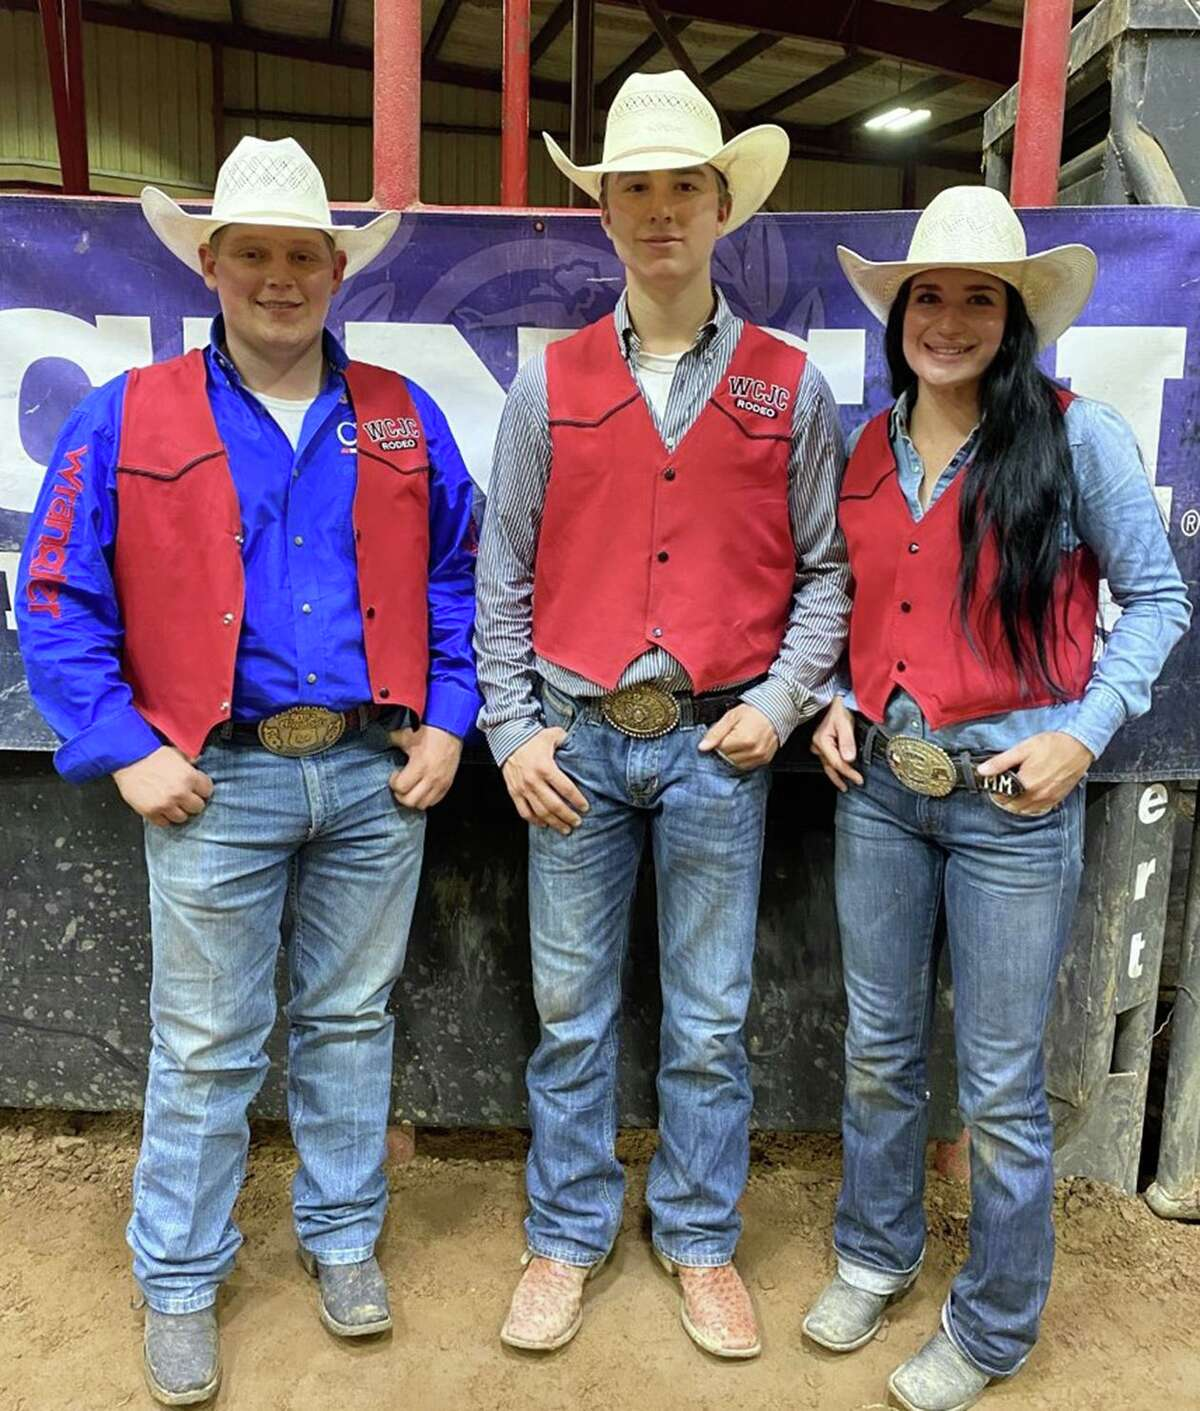 Three Wharton County Junior College rodeo team members have qualified for the College National Finals Rodeo, scheduled for June 11-19 in Casper, Wyo. Pictured from left are Logan Moore of Pleasanton, Connor Atkinson of Needville and Mayce Marek of Arp.